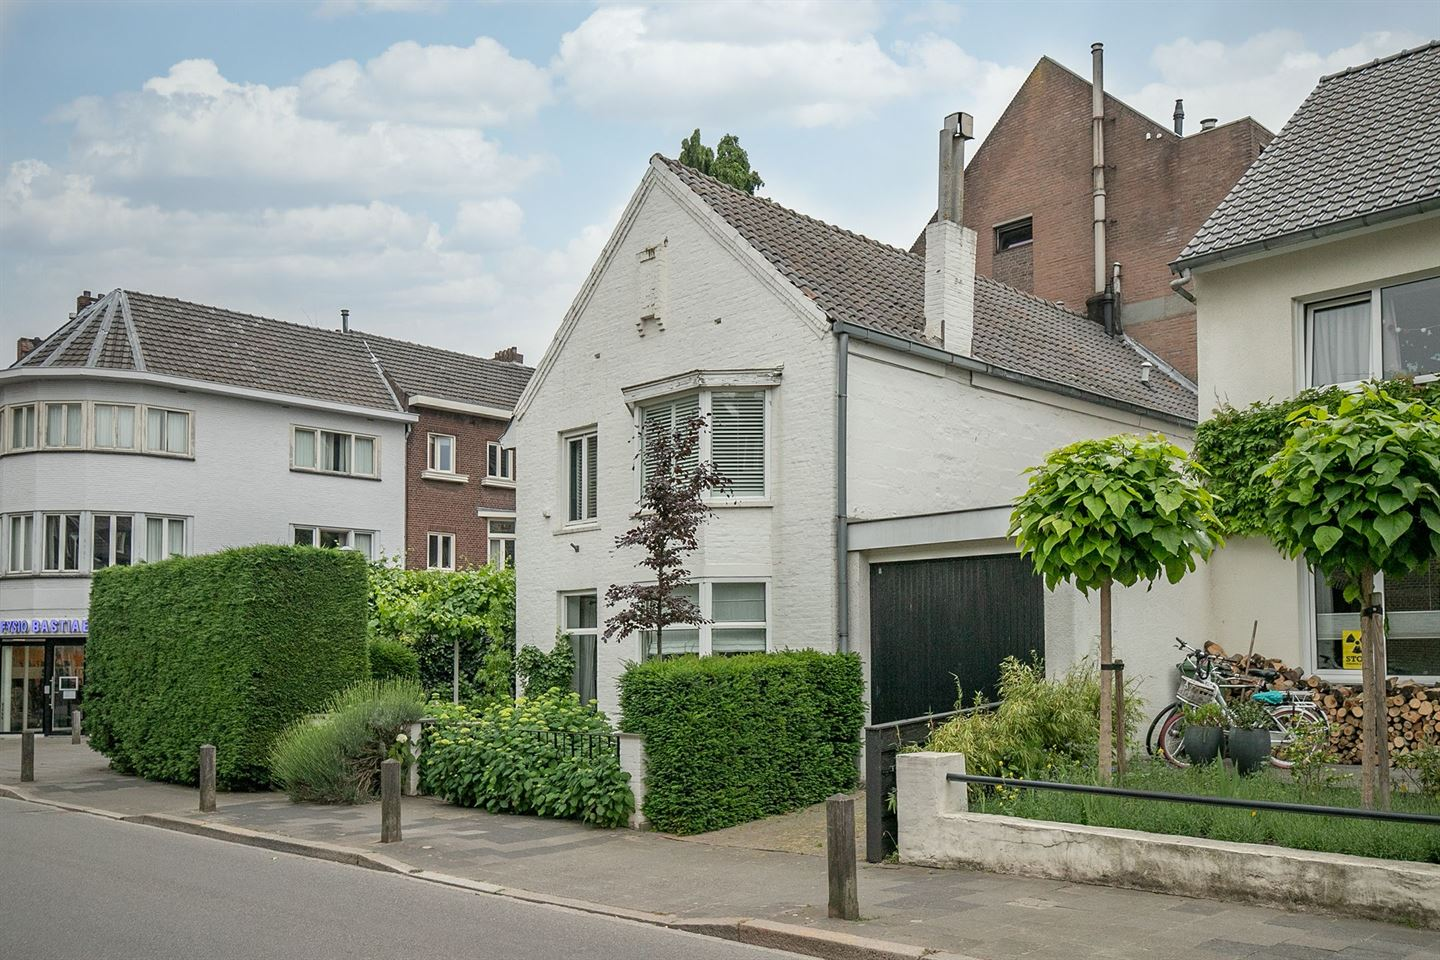 View photo 1 of Glacisweg 61 a